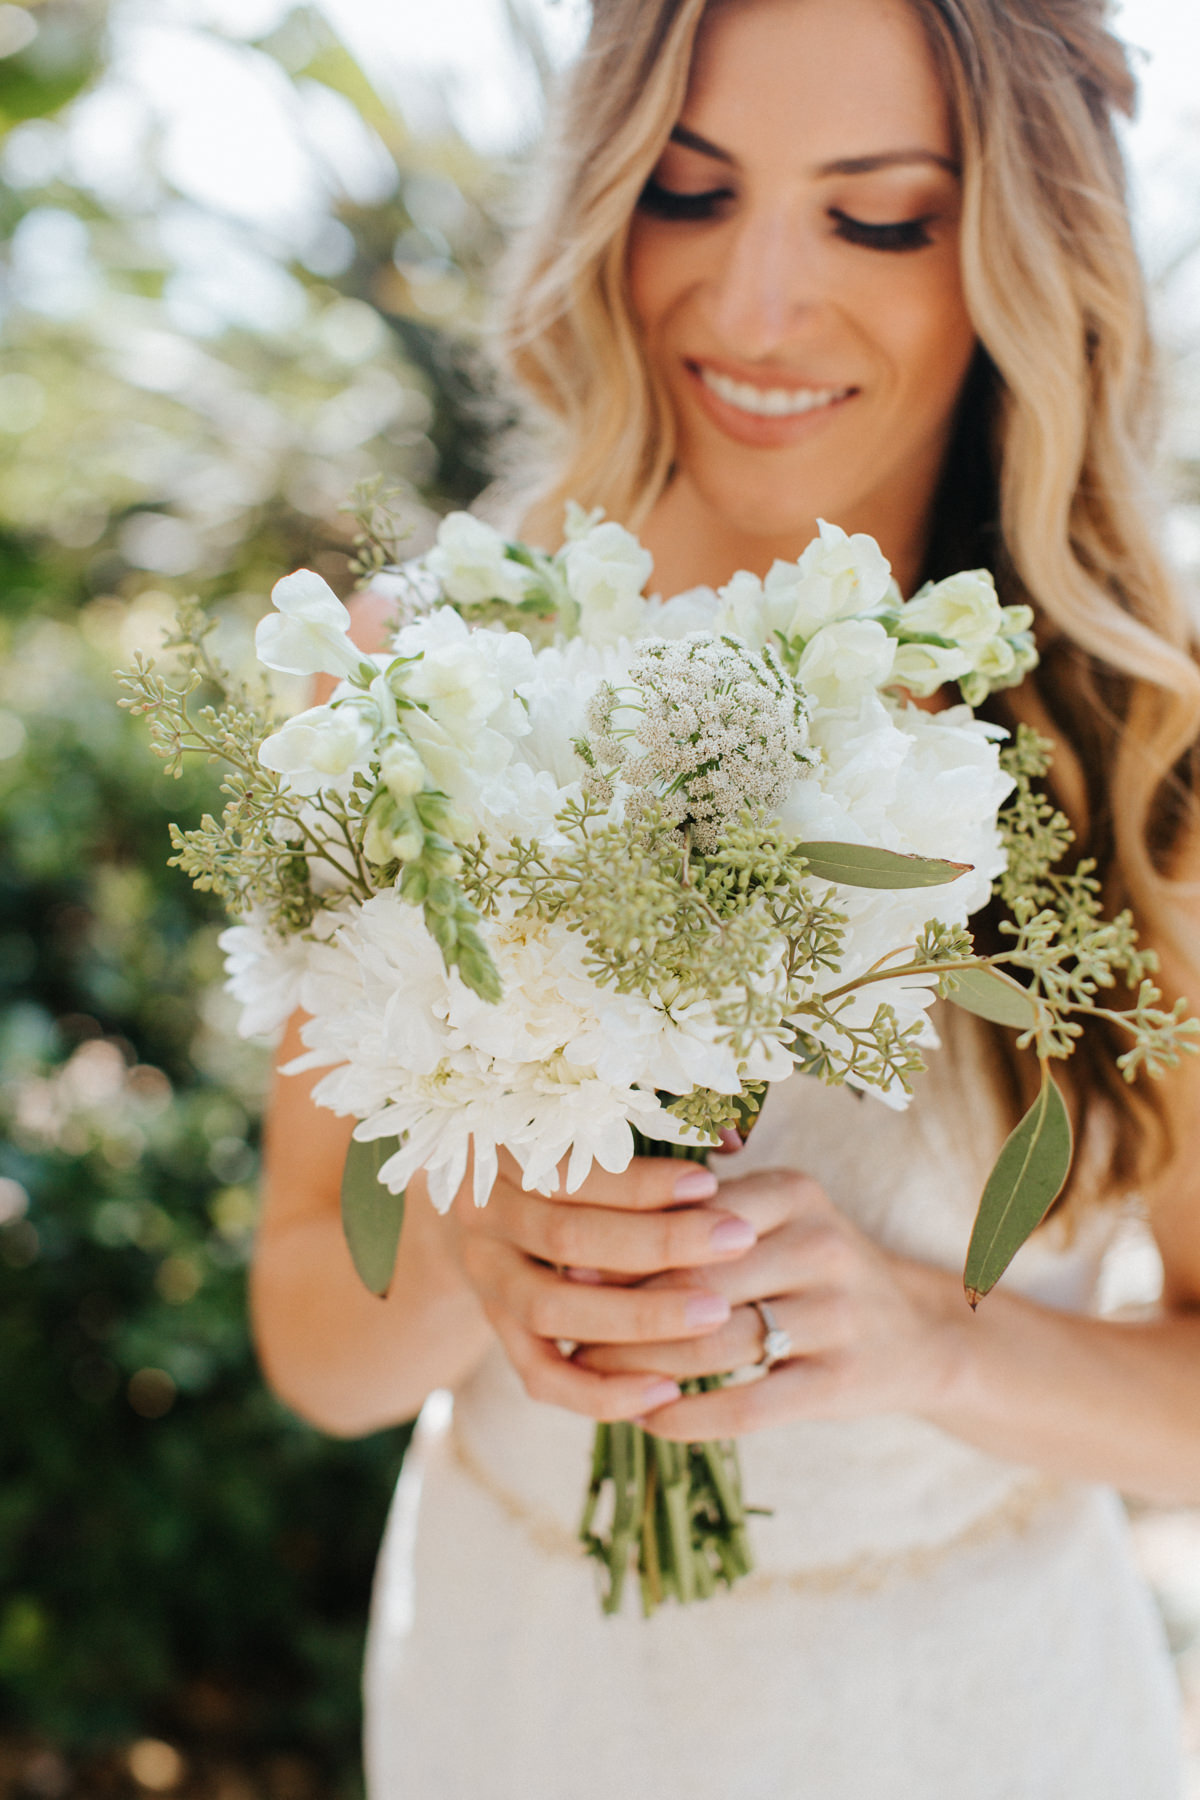 Hotel Laguna Beach Wedding Elopement San Diego OC Portrait + Wedding Photographer Martina Micko Photo _0009